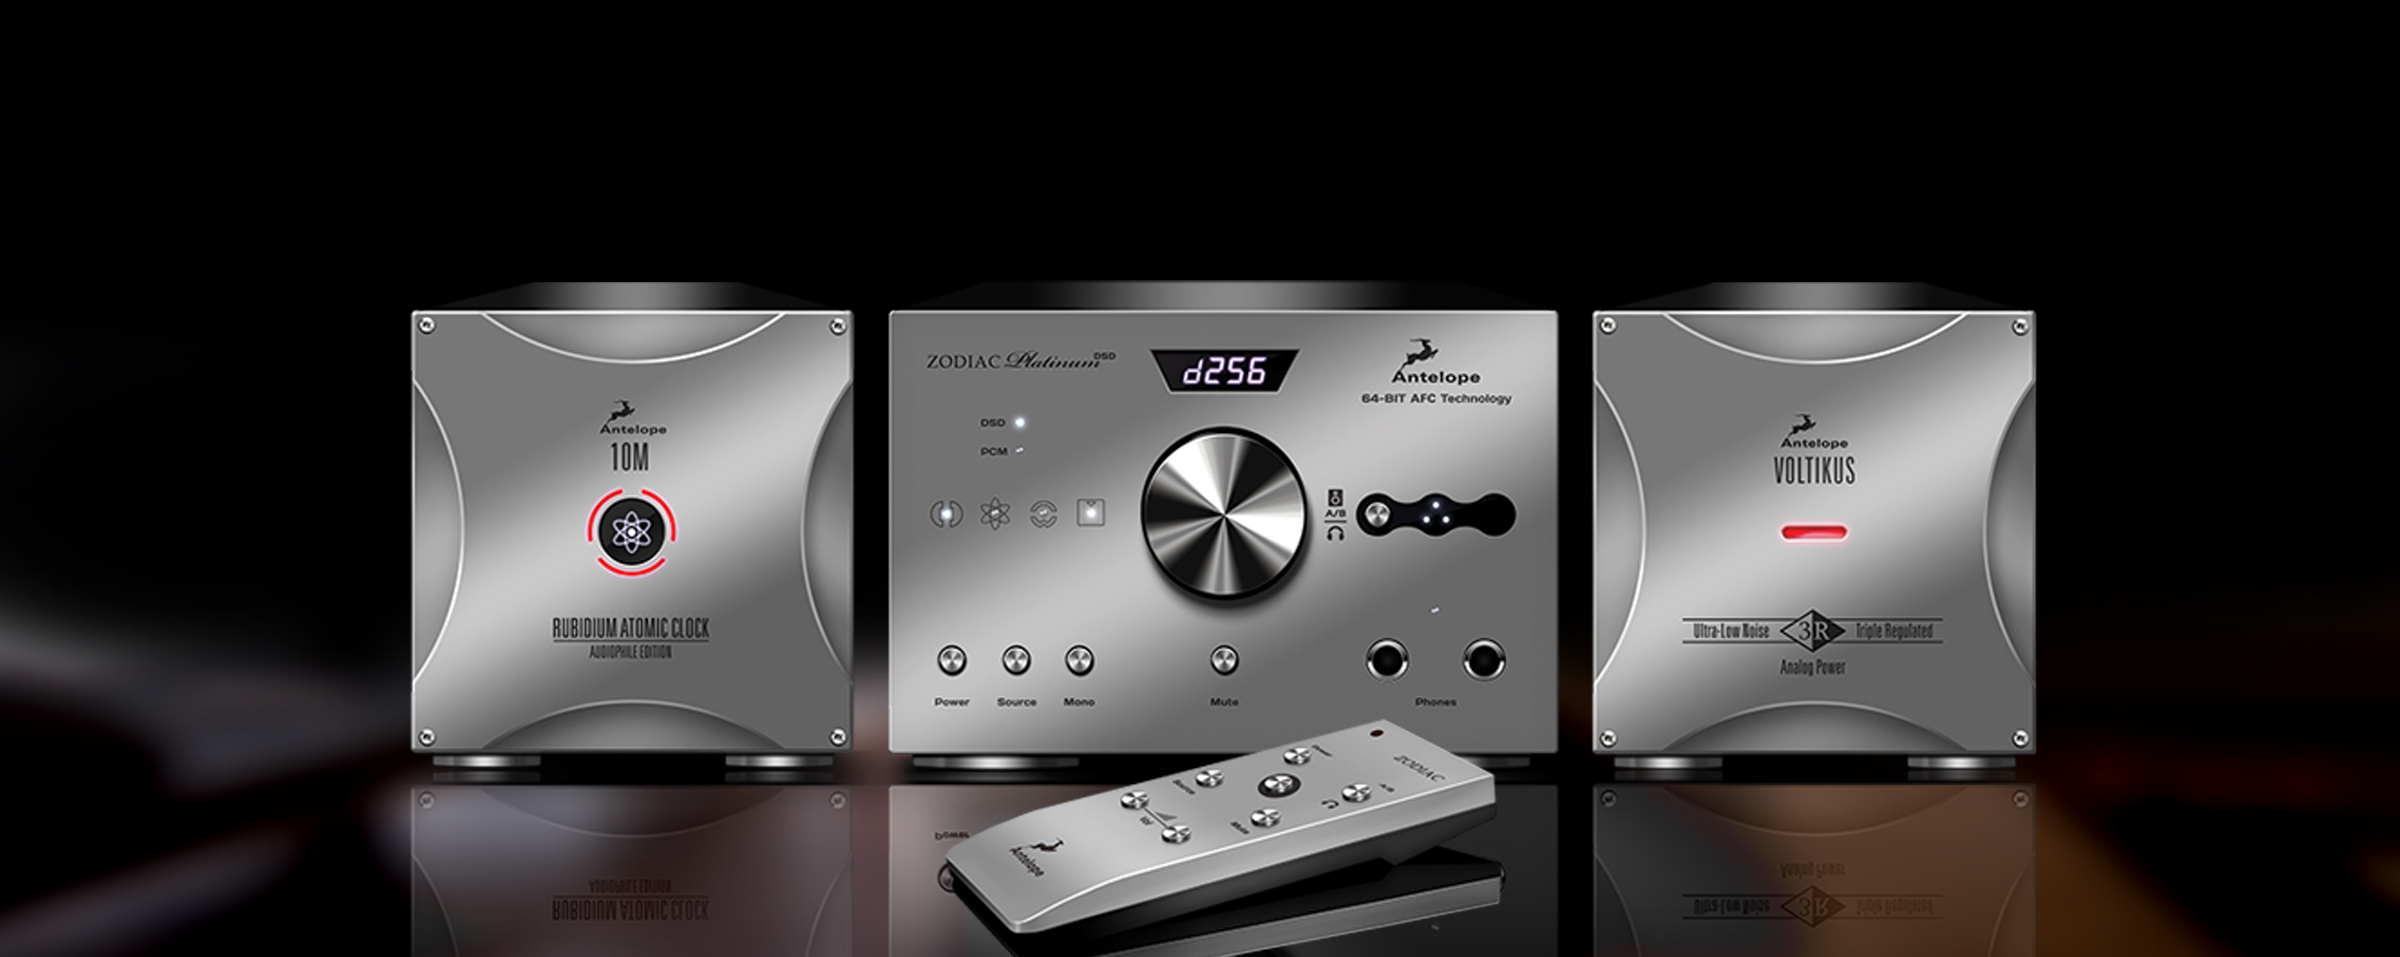 Antelope Audio to Demonstrate New Zodiac Platinum DSD DAC and Rubicon AD/DA Preamplifier at CES International 2014